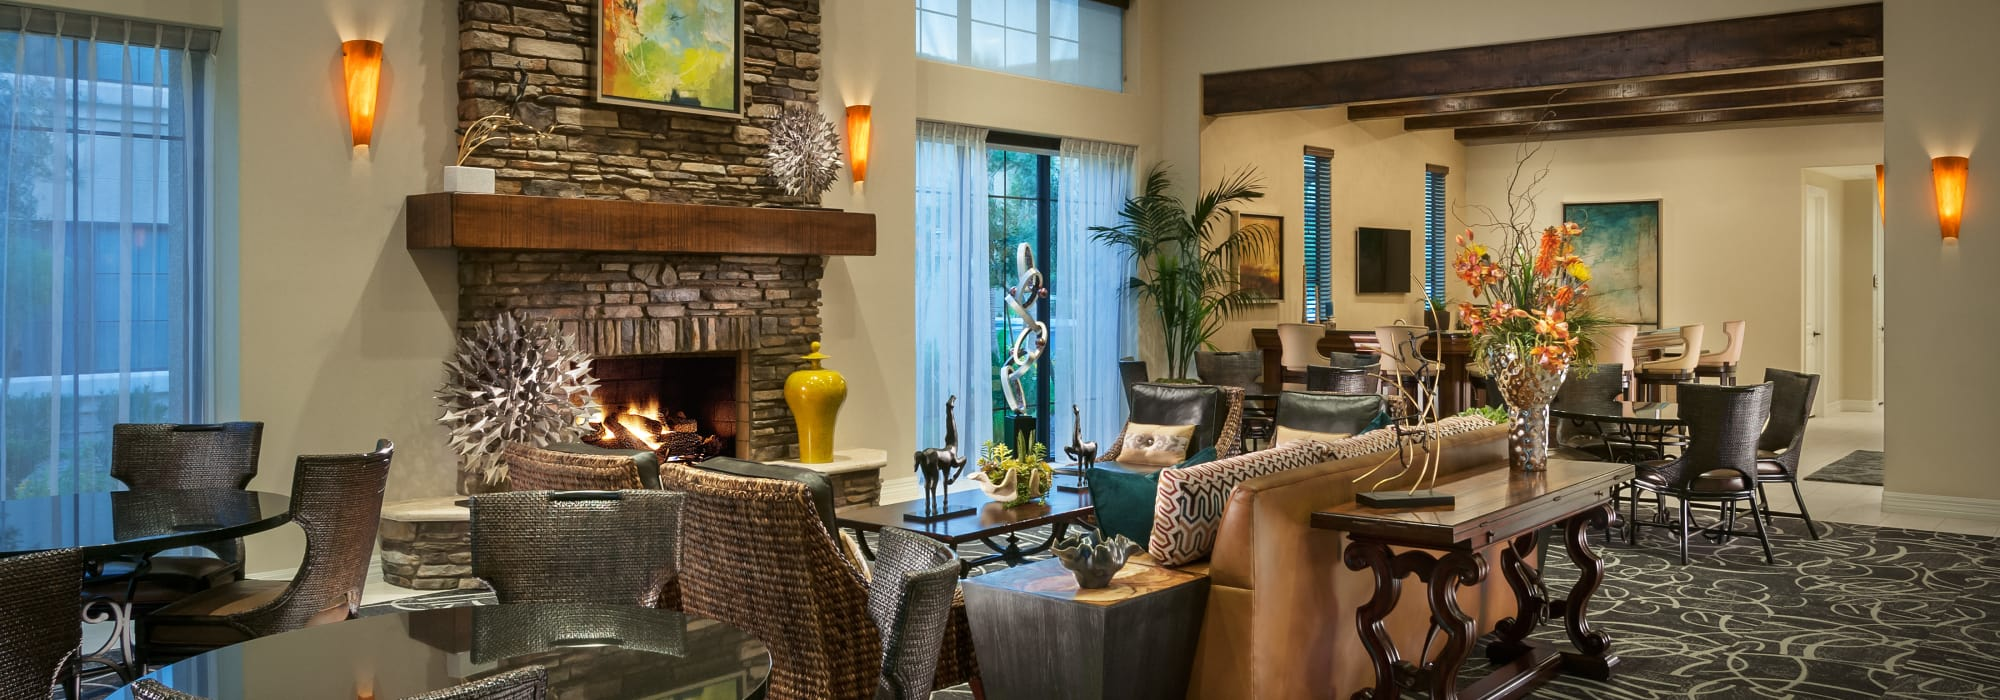 Interior of the lavish resident clubhouse at San Milan in Phoenix, Arizona